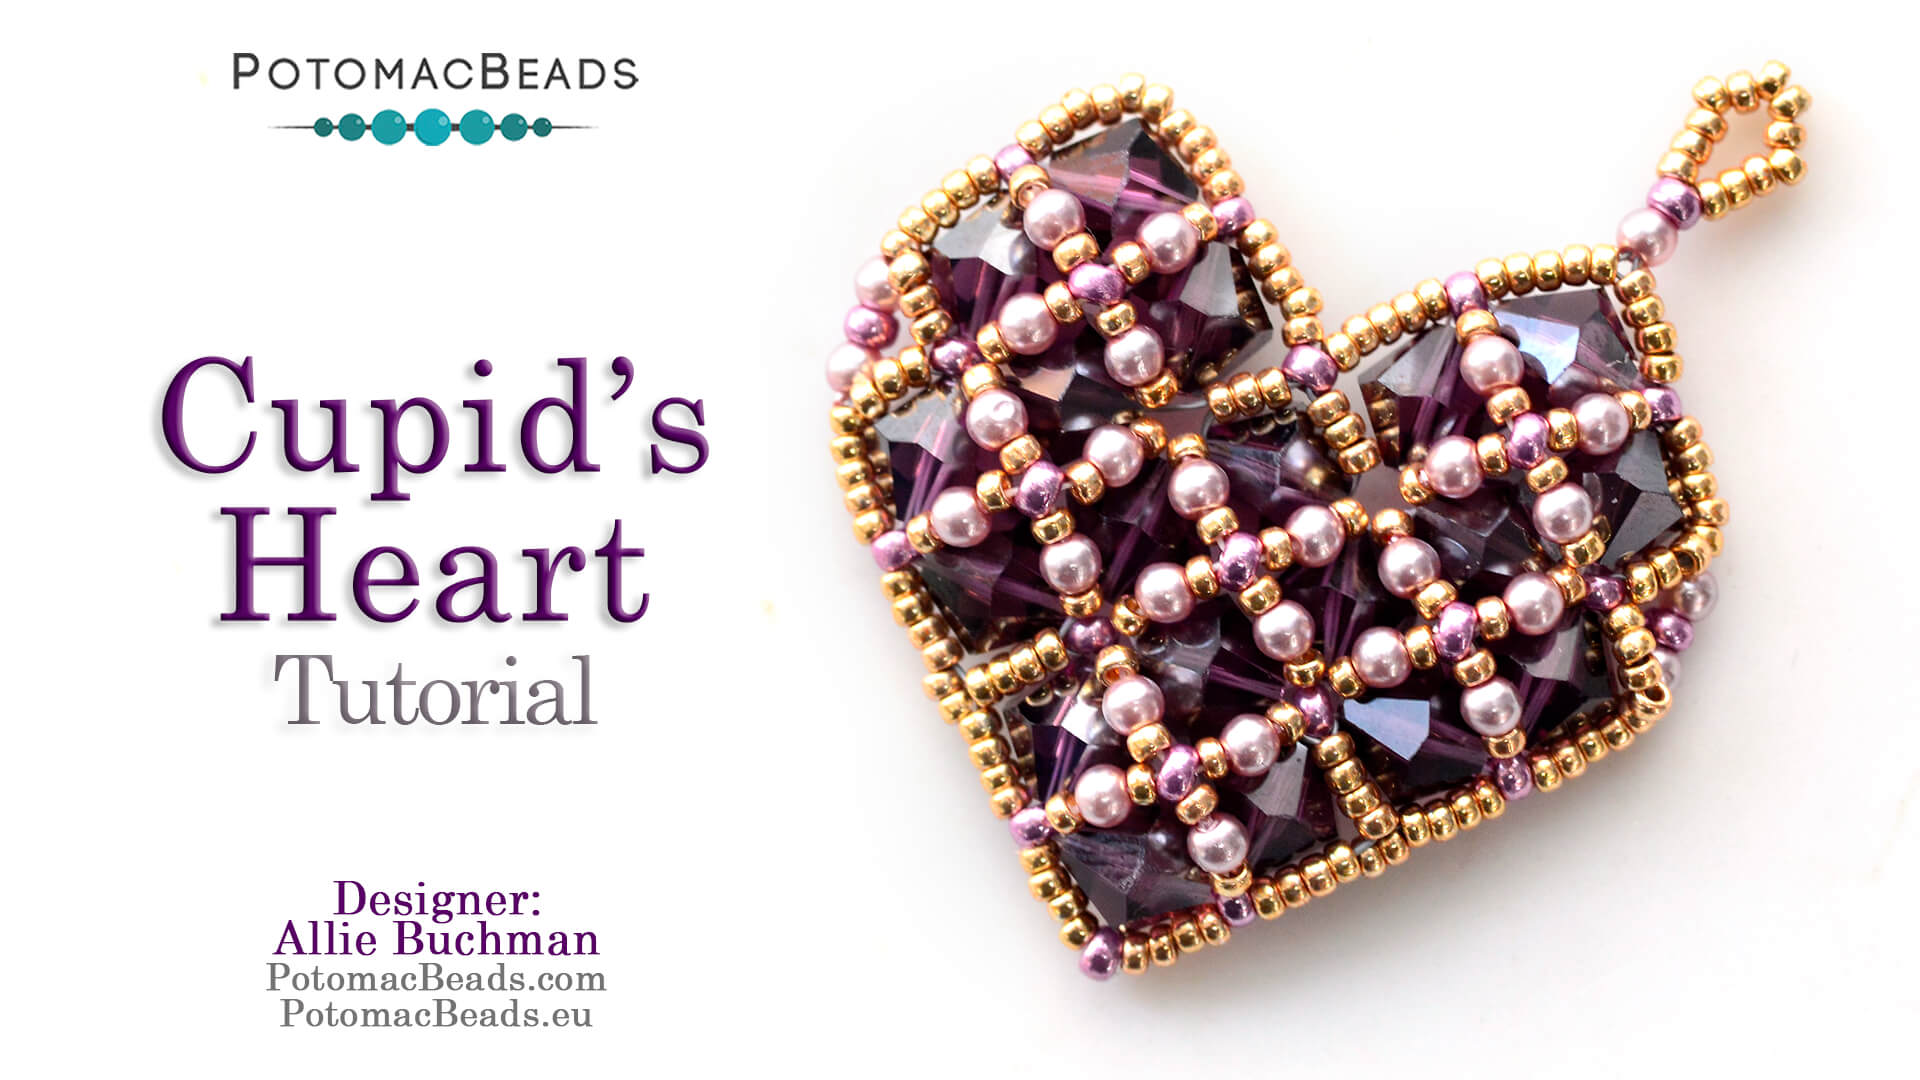 How to Bead Jewelry / Videos Sorted by Beads / Pearl Videos (Czech, Freshwater, Potomac Pearls) / Cupid's Heart Tutorial